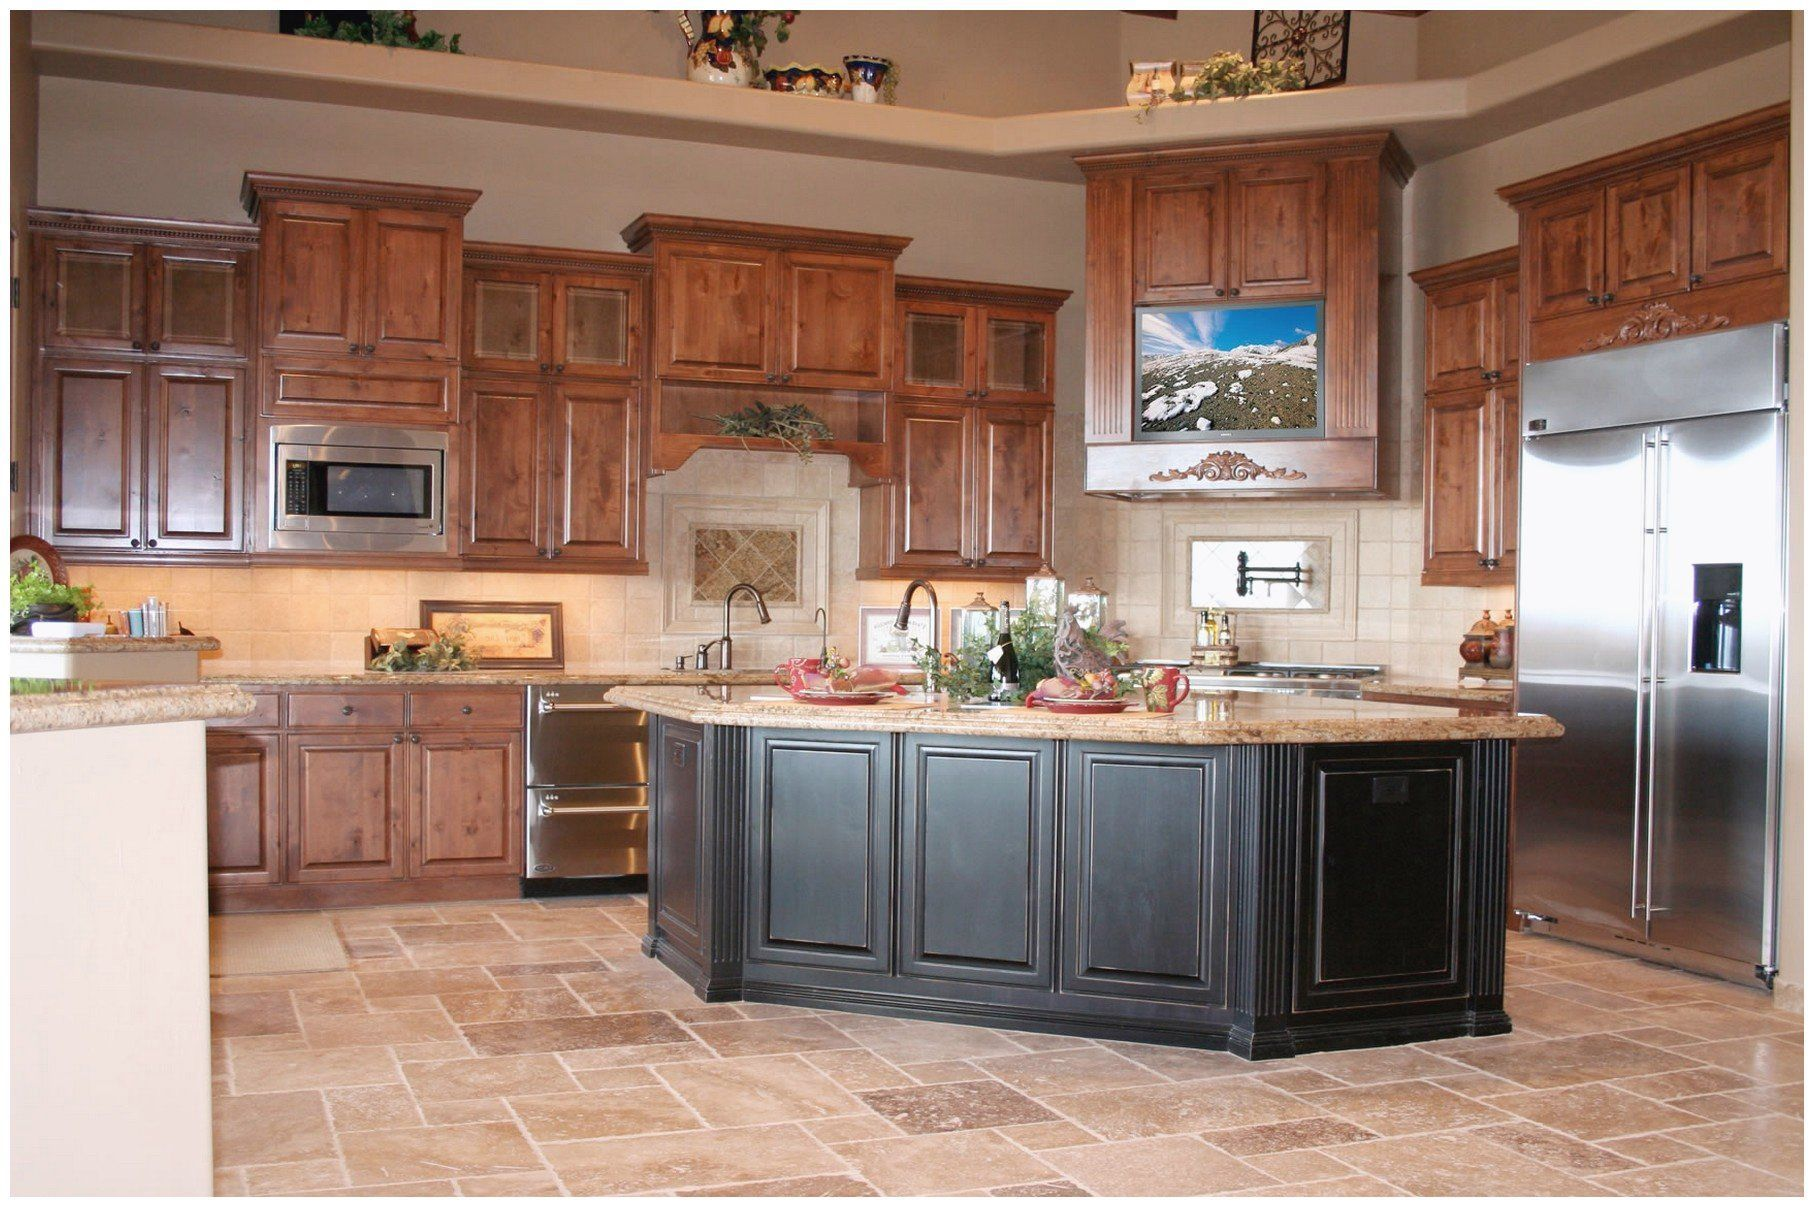 Kitchen Cabinets Home Depot In Stock Ideas Room Interior And Decoration Home Depot Bathroom Vanities Bath In 2020 Home Depot Kitchen Kitchen Cabinets Kitchen Cupboards